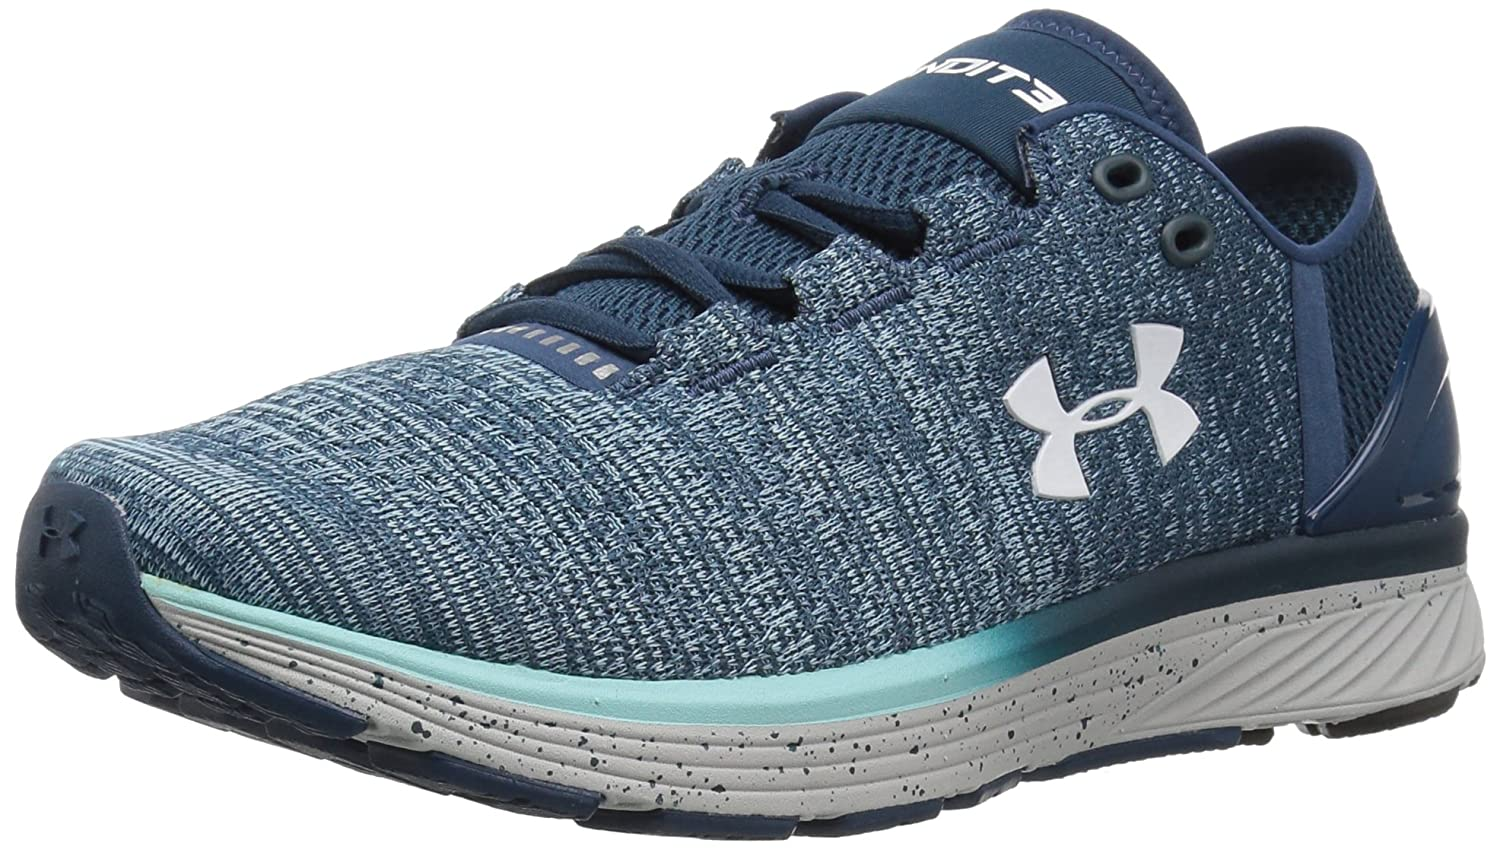 Under Armour Women's Charged Bandit 3 Running Shoe B01N1QP1N3 11 M US|True Ink (918)/Blue Infinity